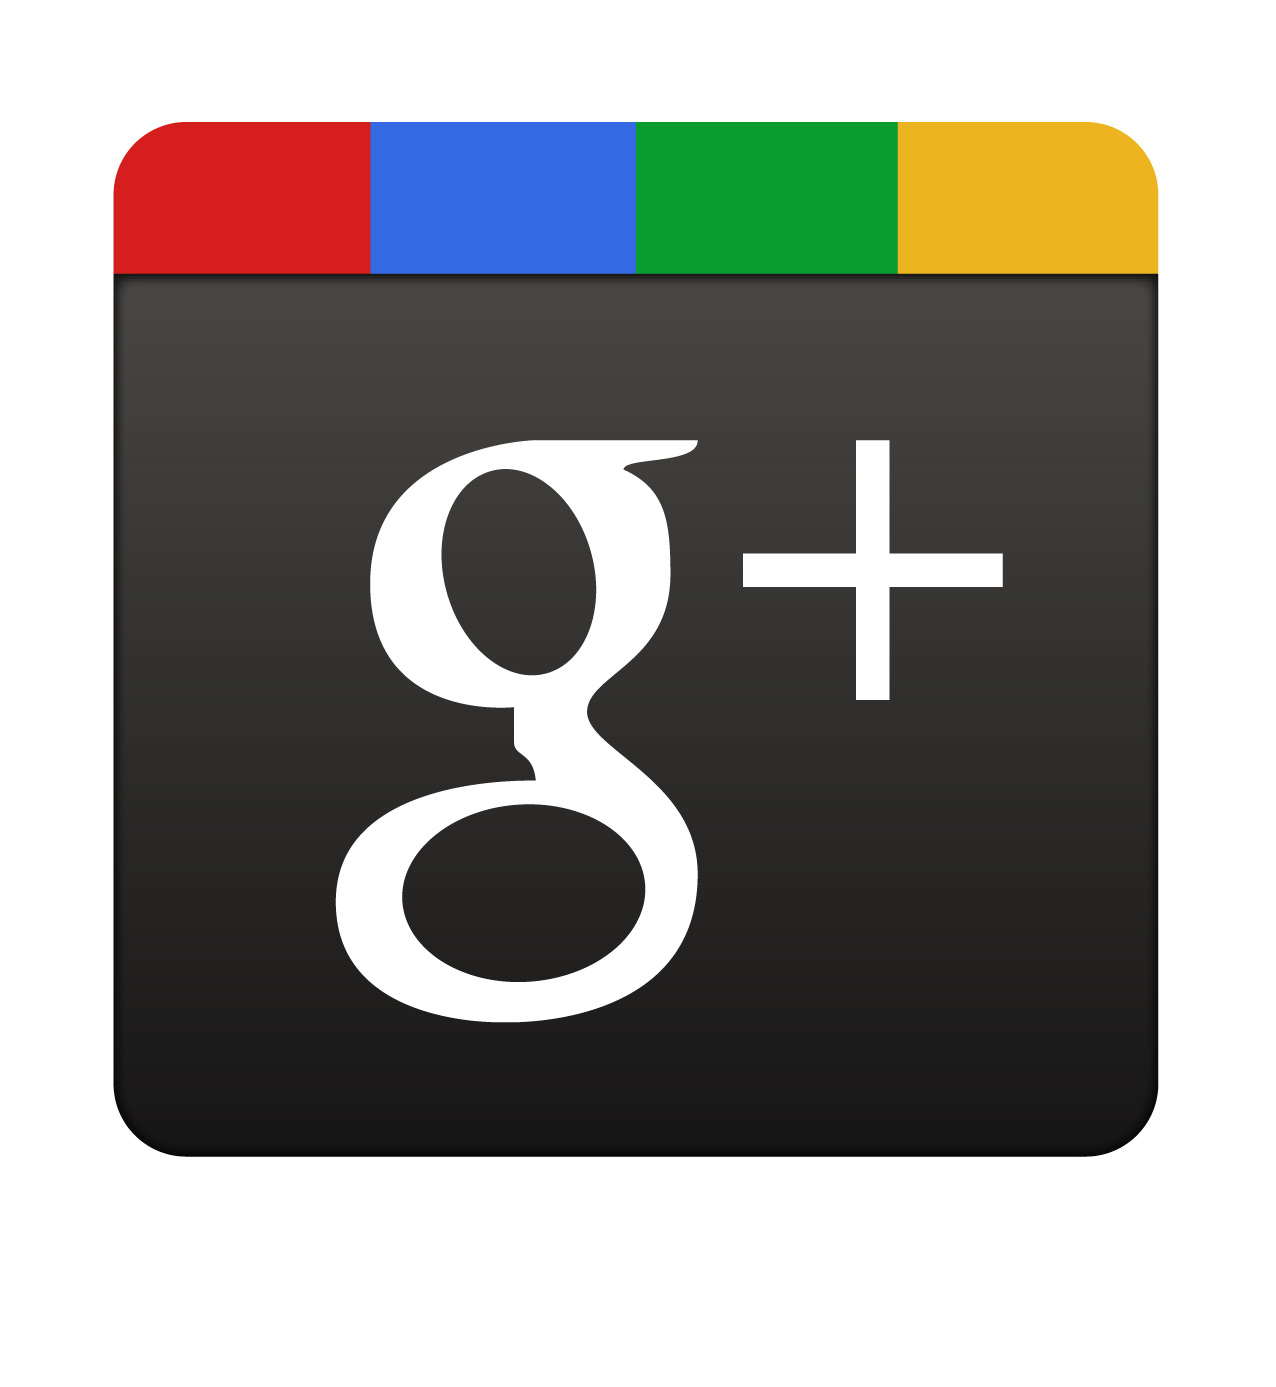 add 1000+ REAL Google plus +1 to boost your page high ranking on Google search engine and give you wikibot tool for free